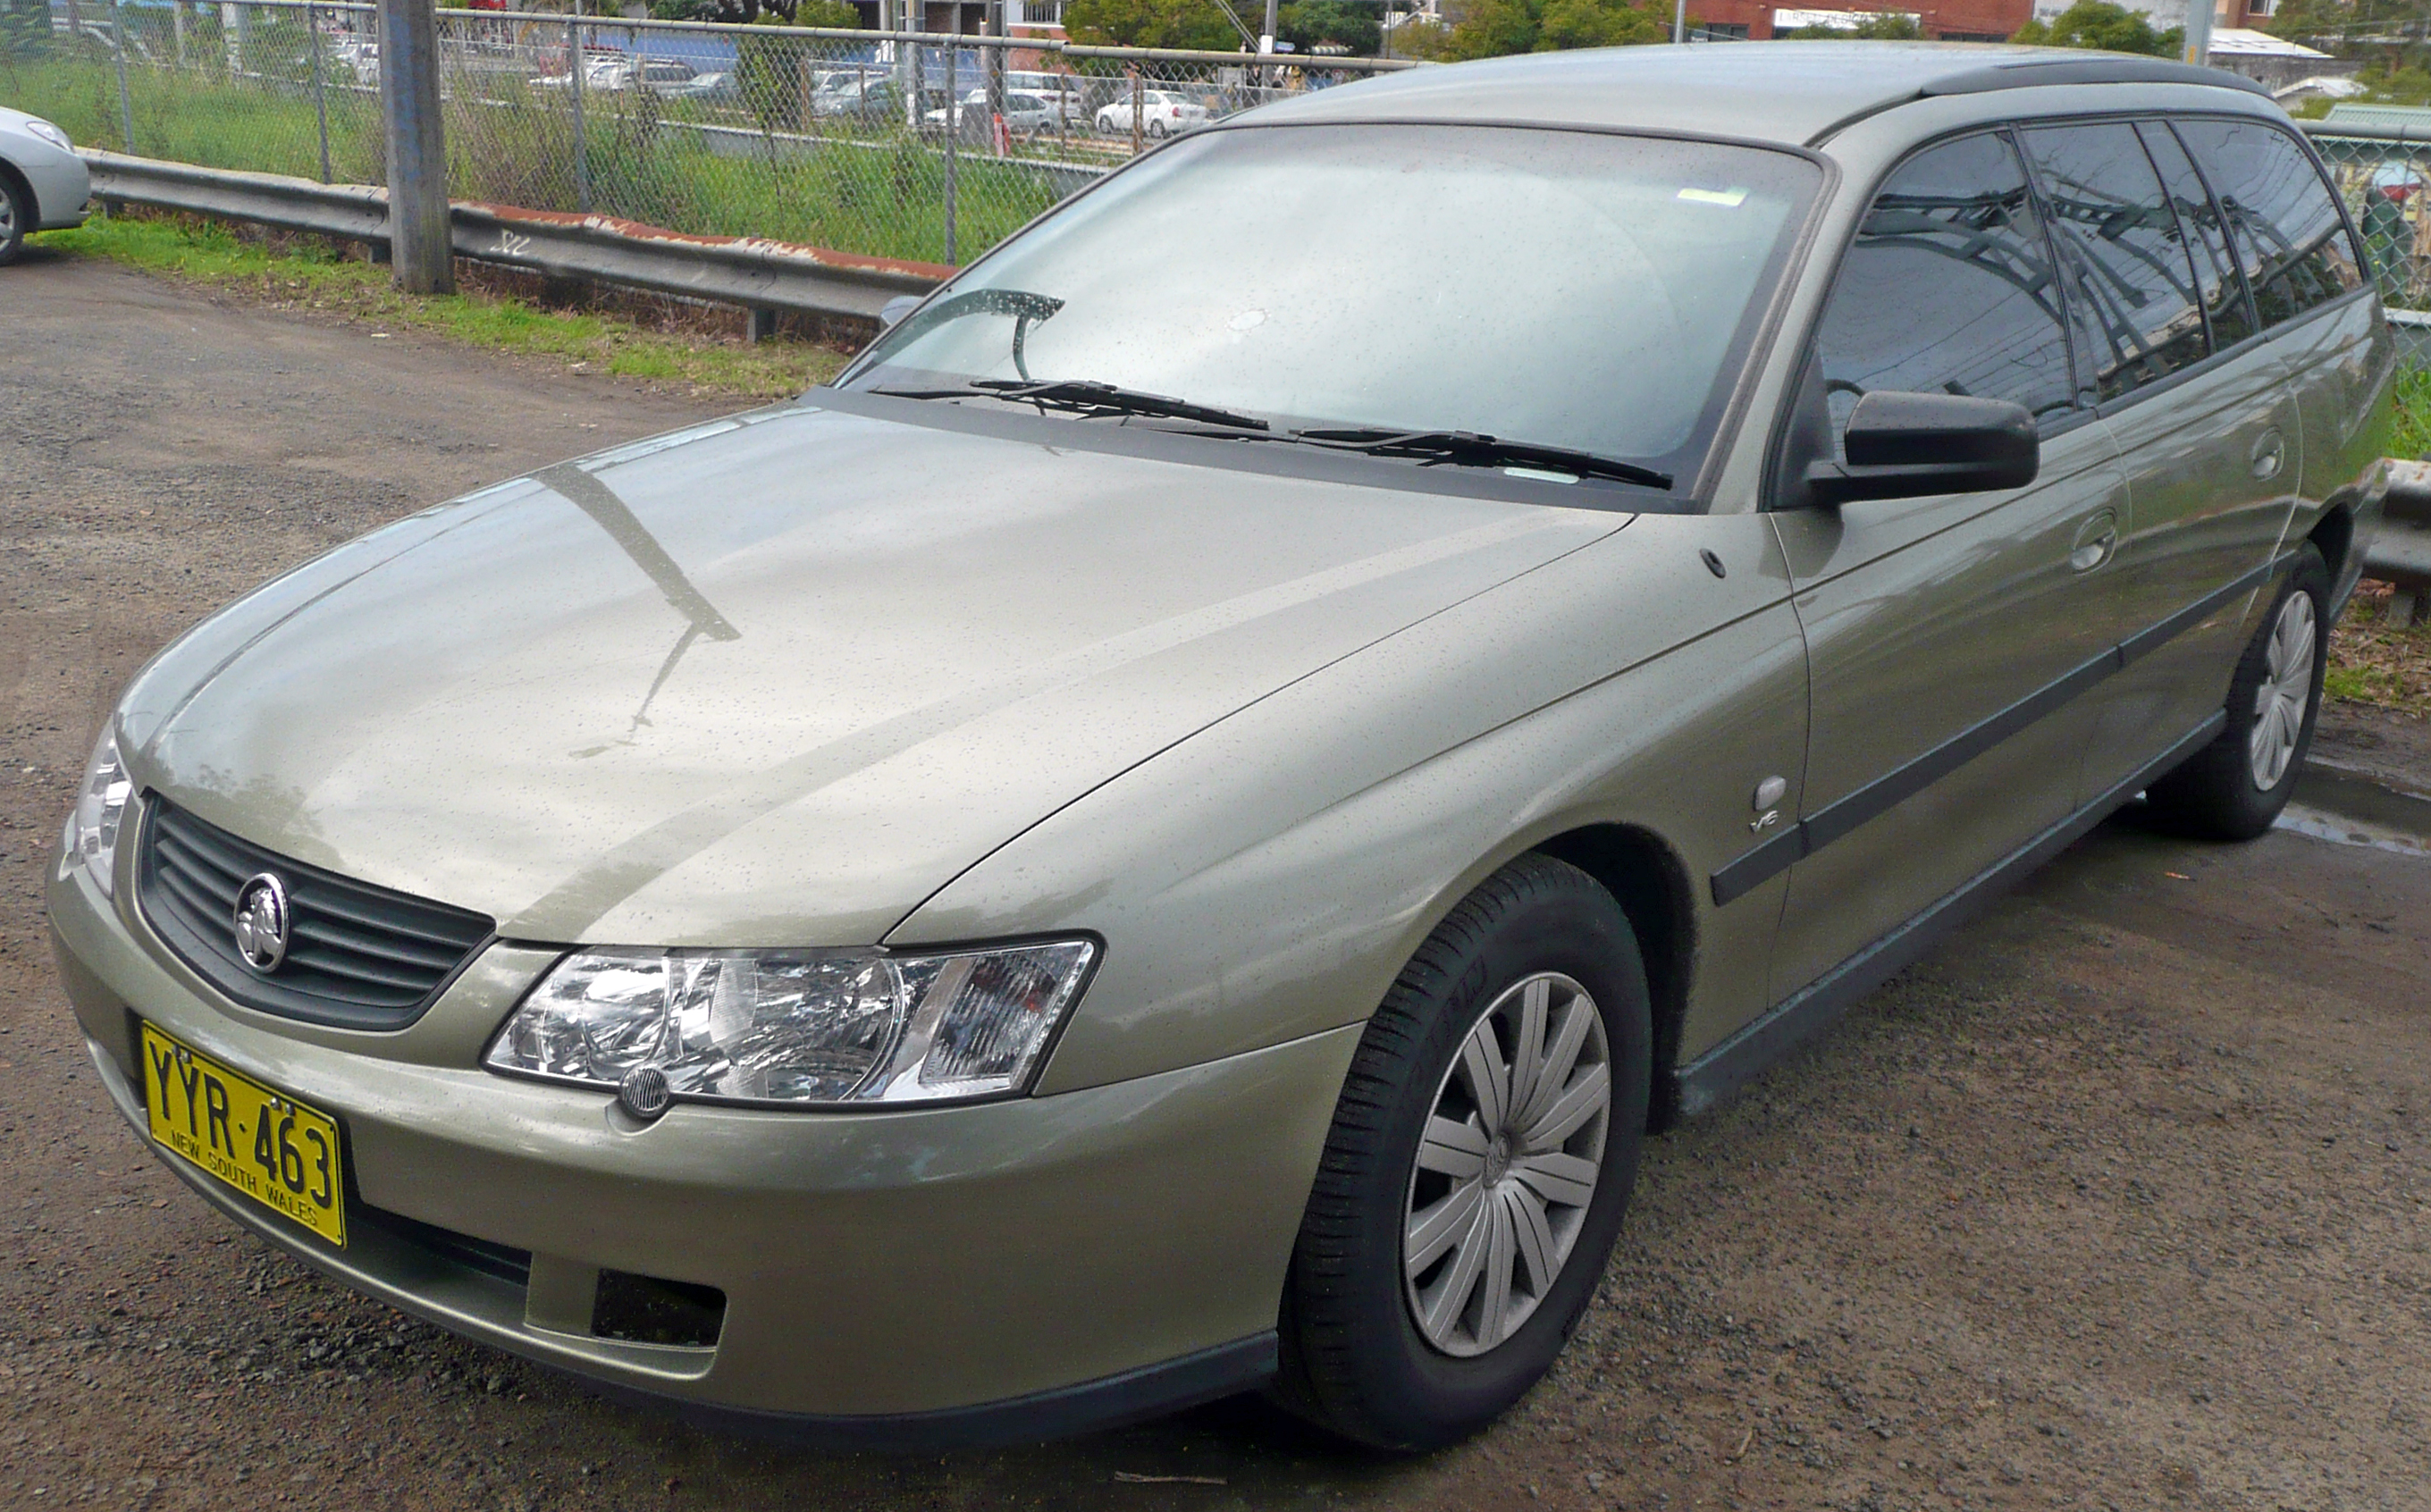 Cars holden commodore wagon (vt) 2007 #4